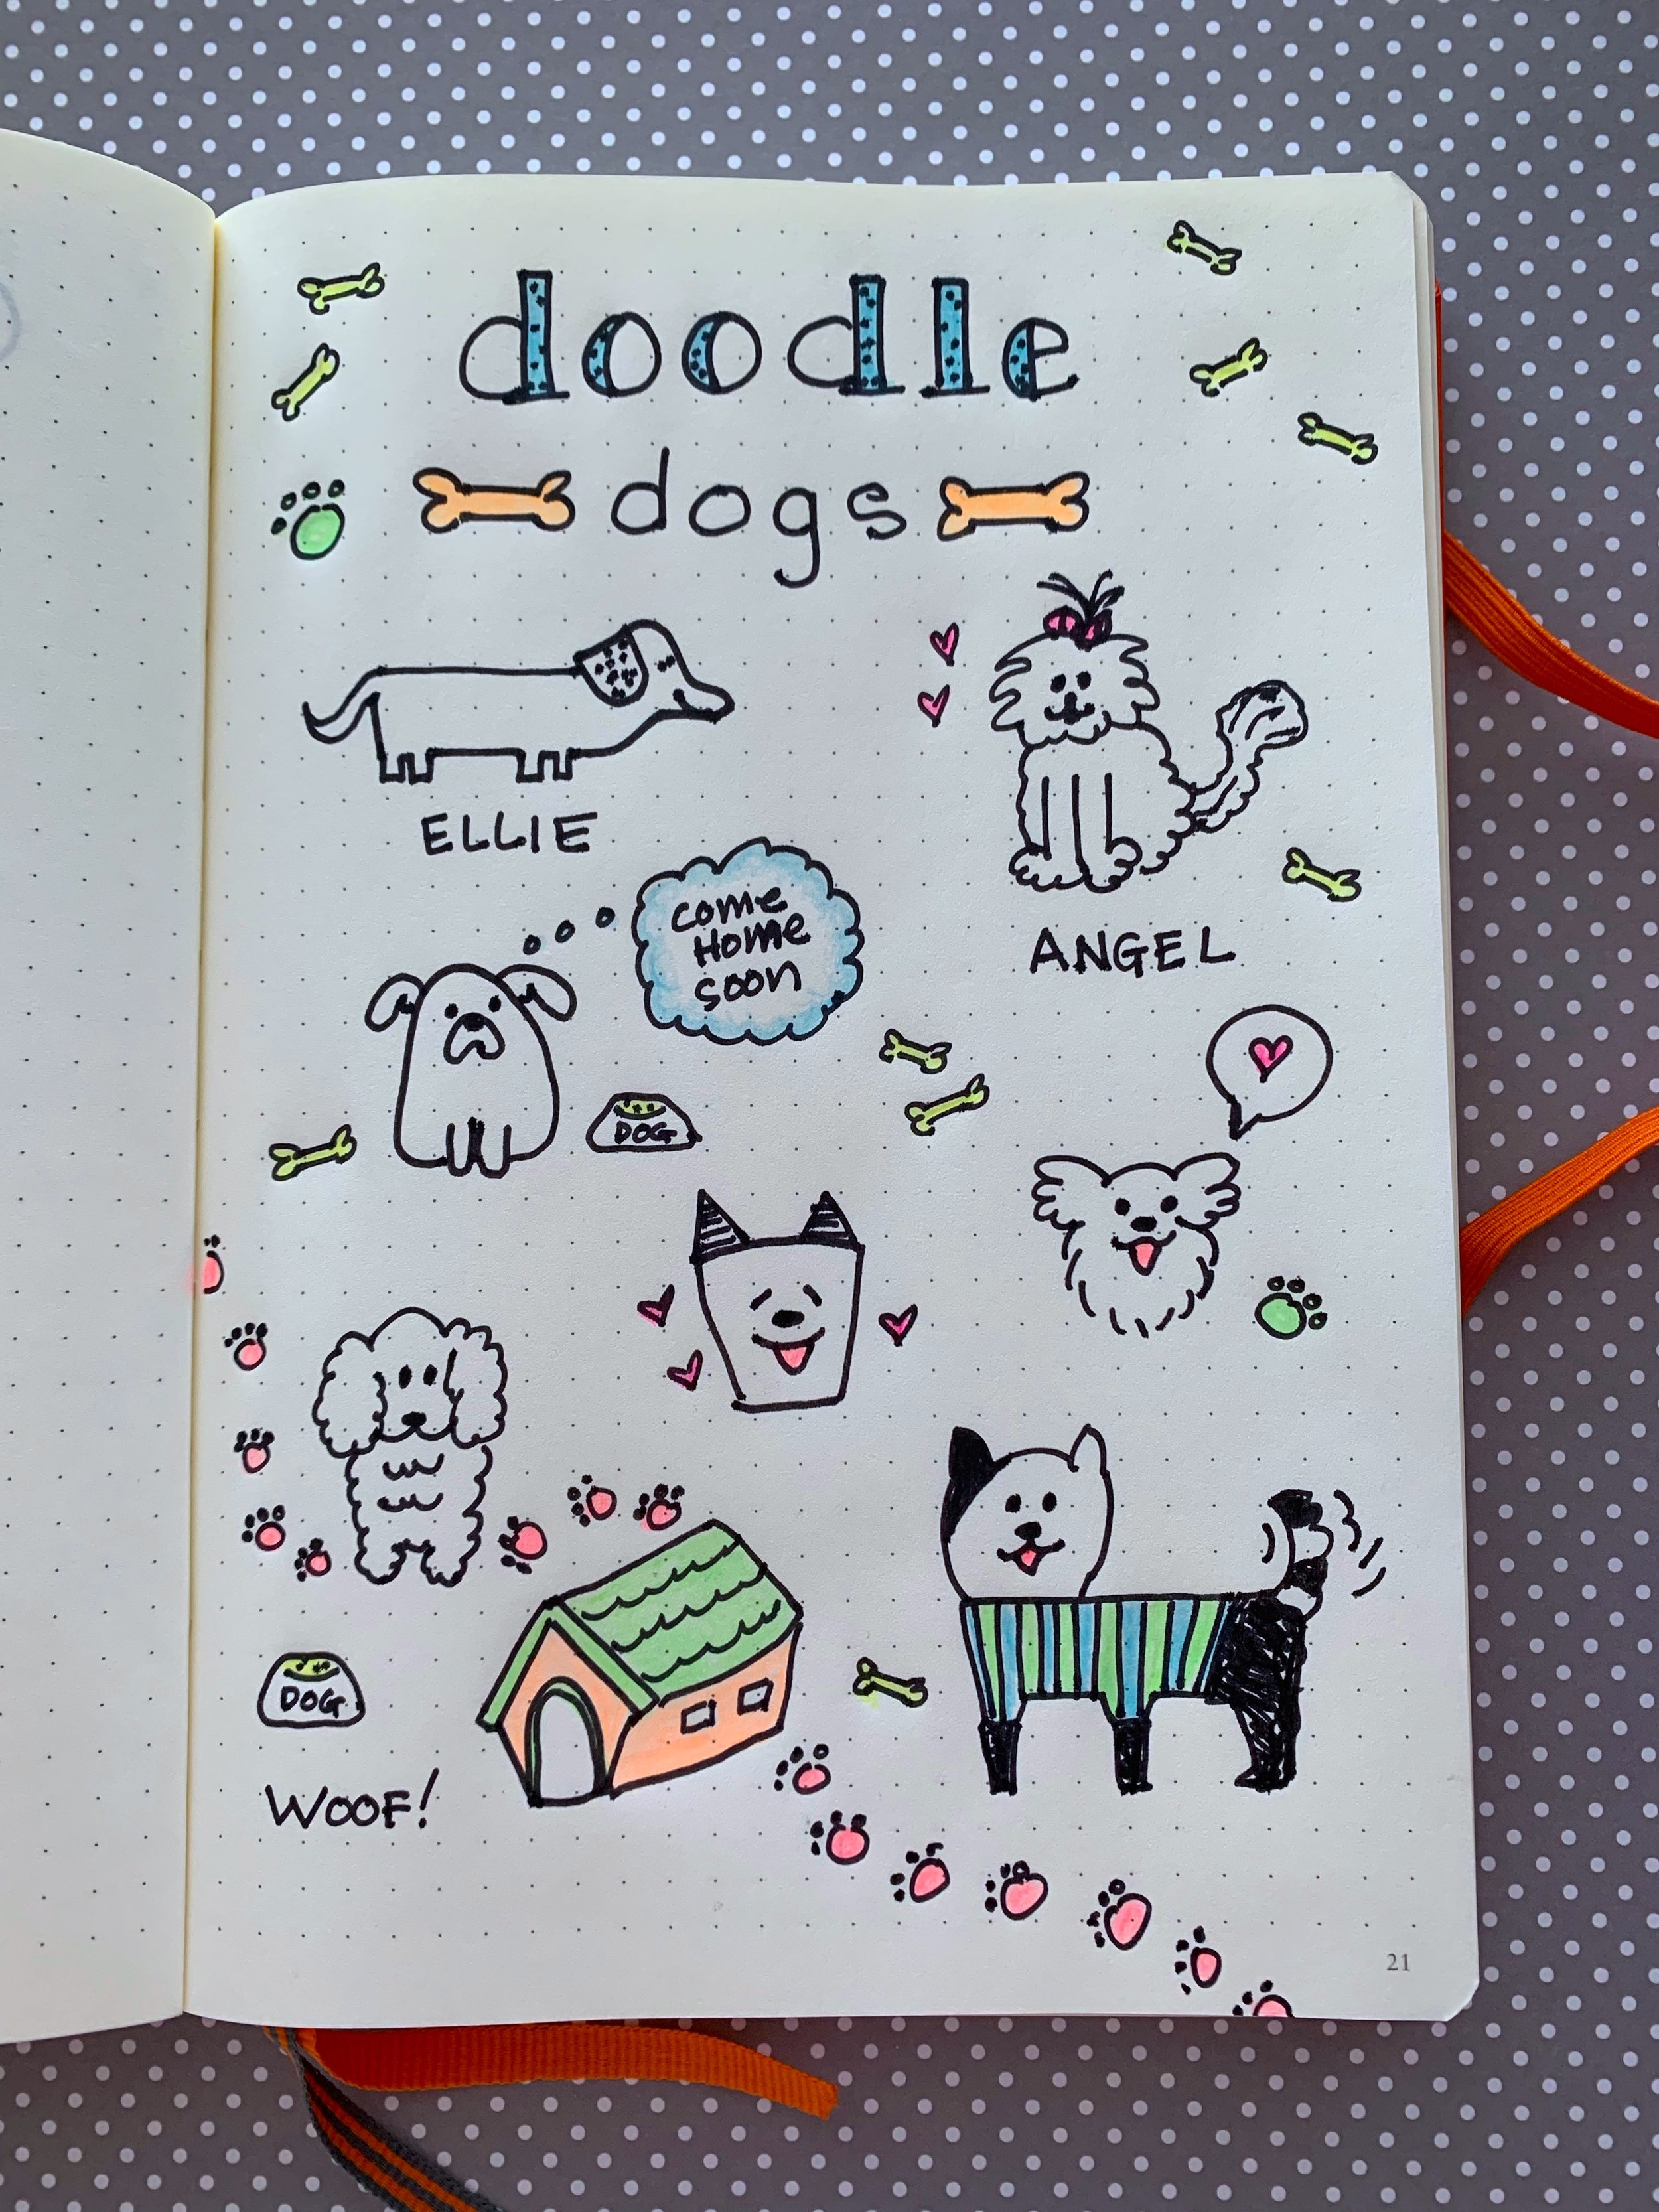 How to Draw Cute Dogs - Lots of Easy to Draw Ideas!